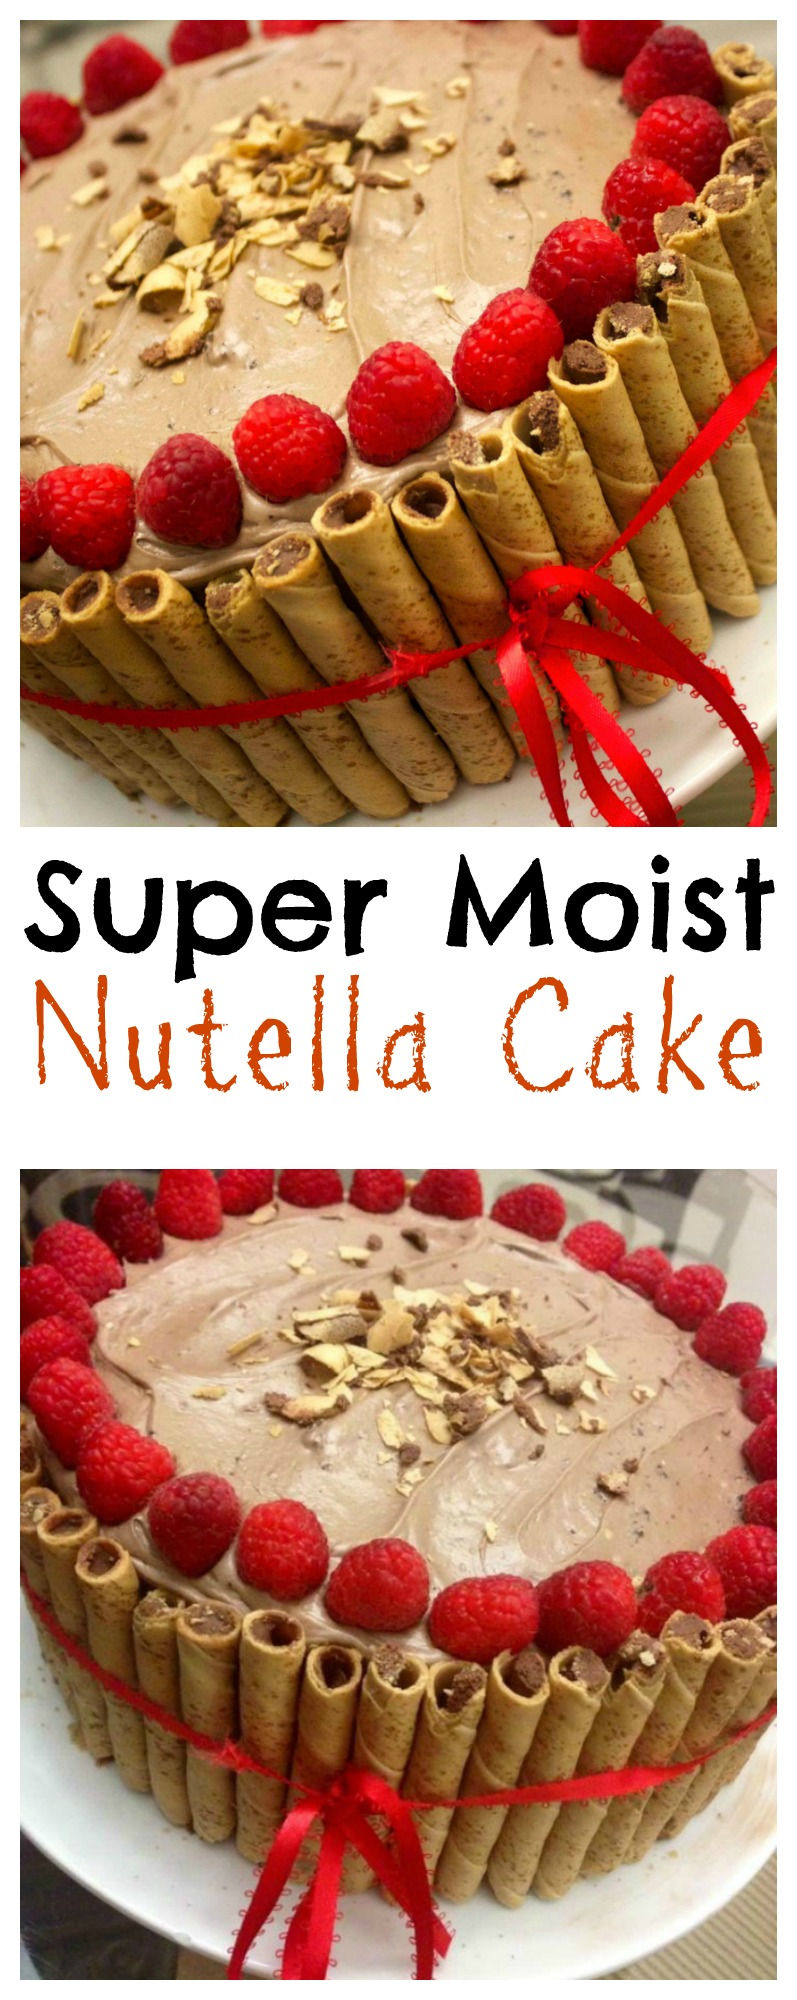 Super Moist Nutella Cake with Chocolate Hazelnut Frosting and Raspberries